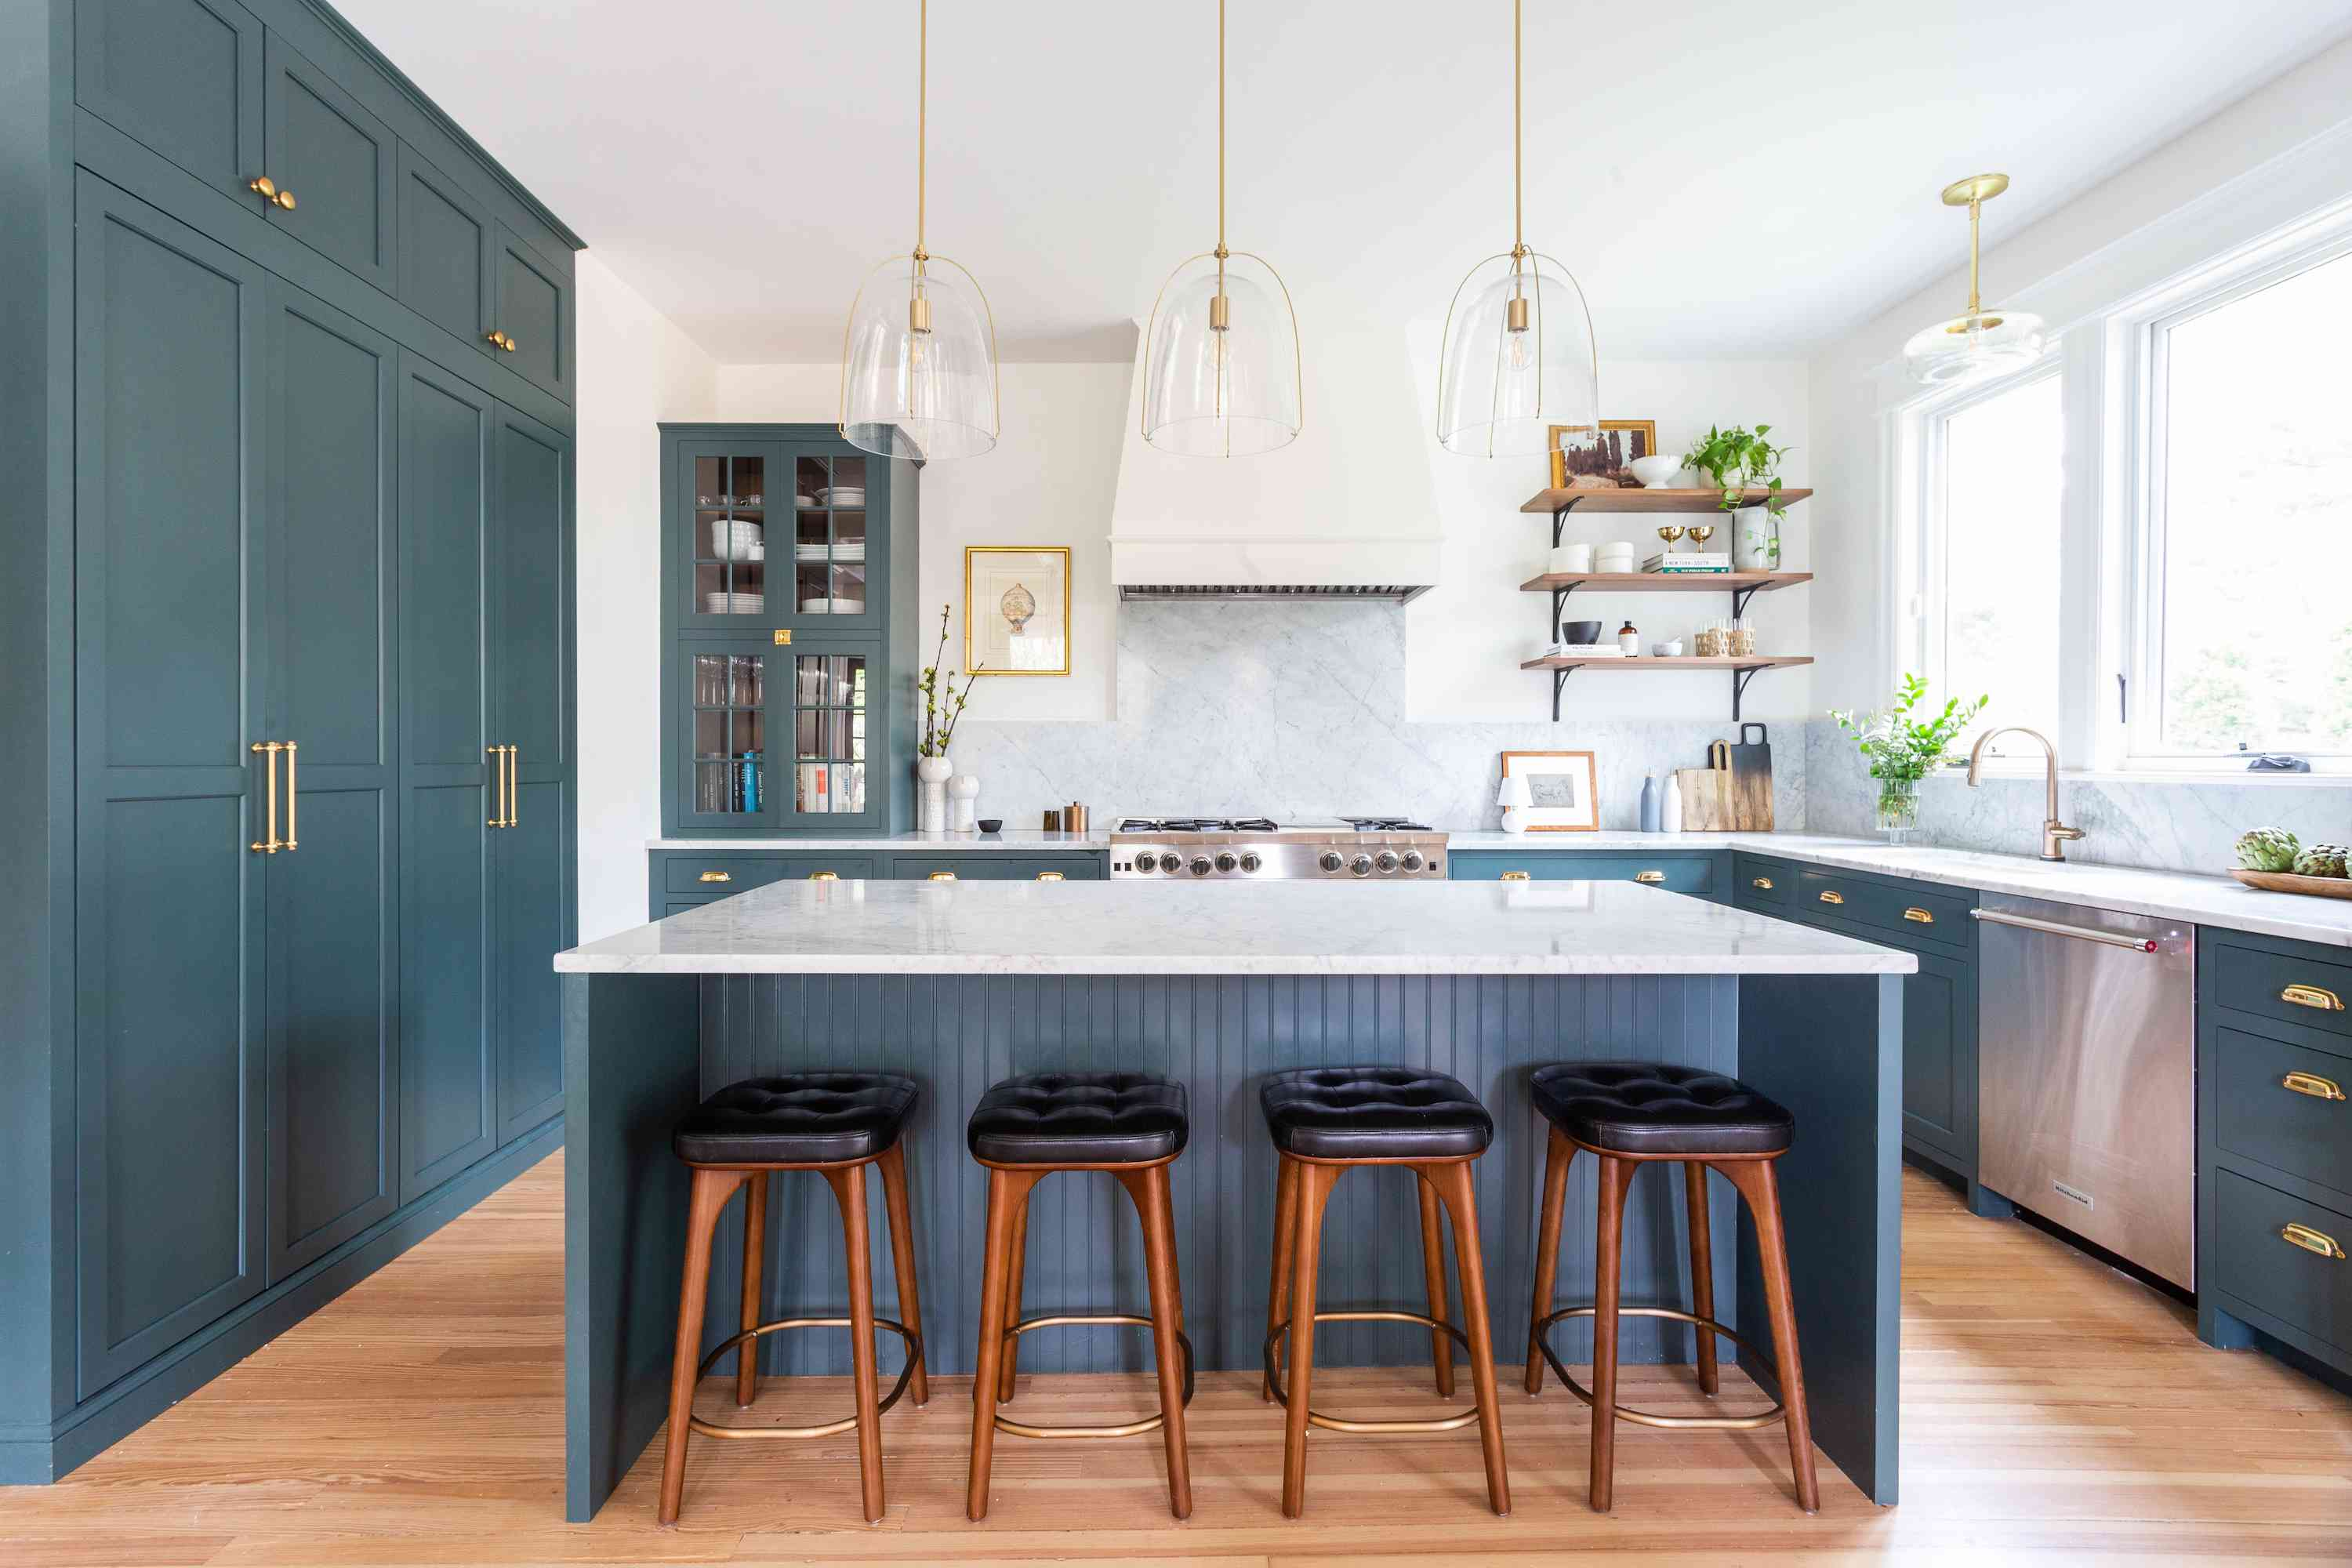 Classic kitchen with teal cabinetry.